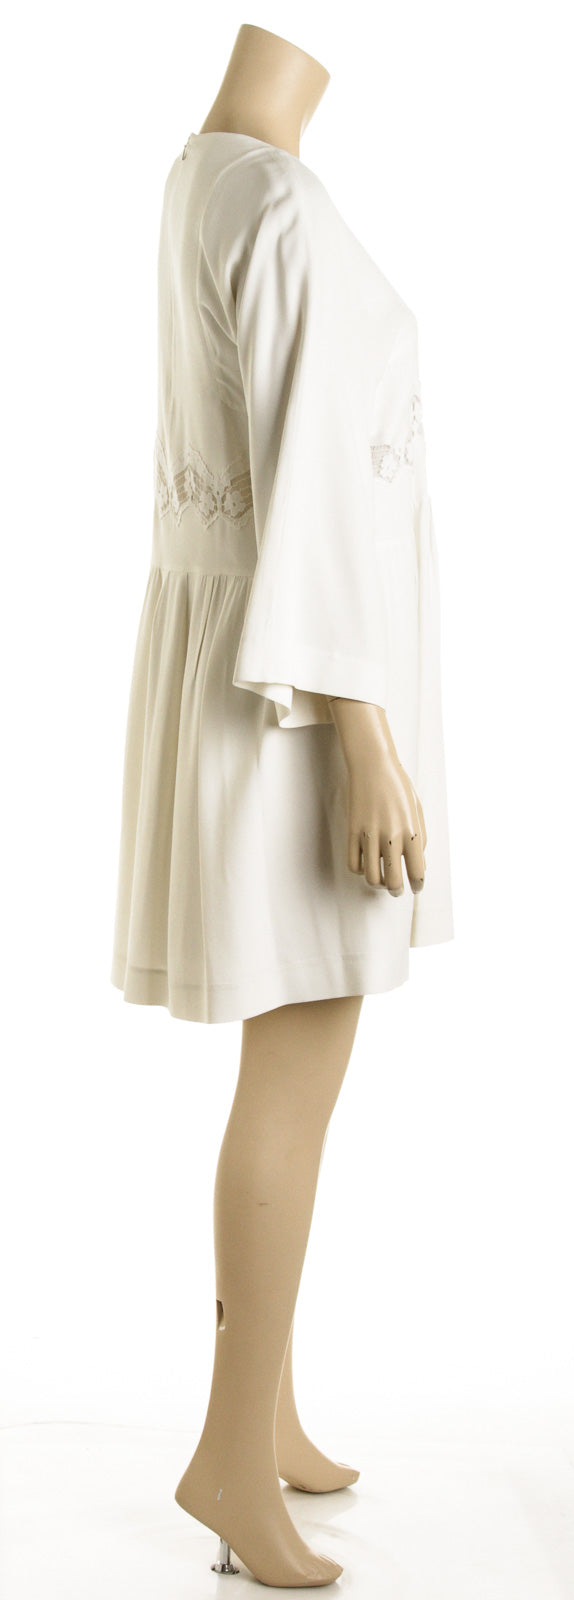 Chloe White Lace Cut-Out Long Sleeve Dress (Size 34)